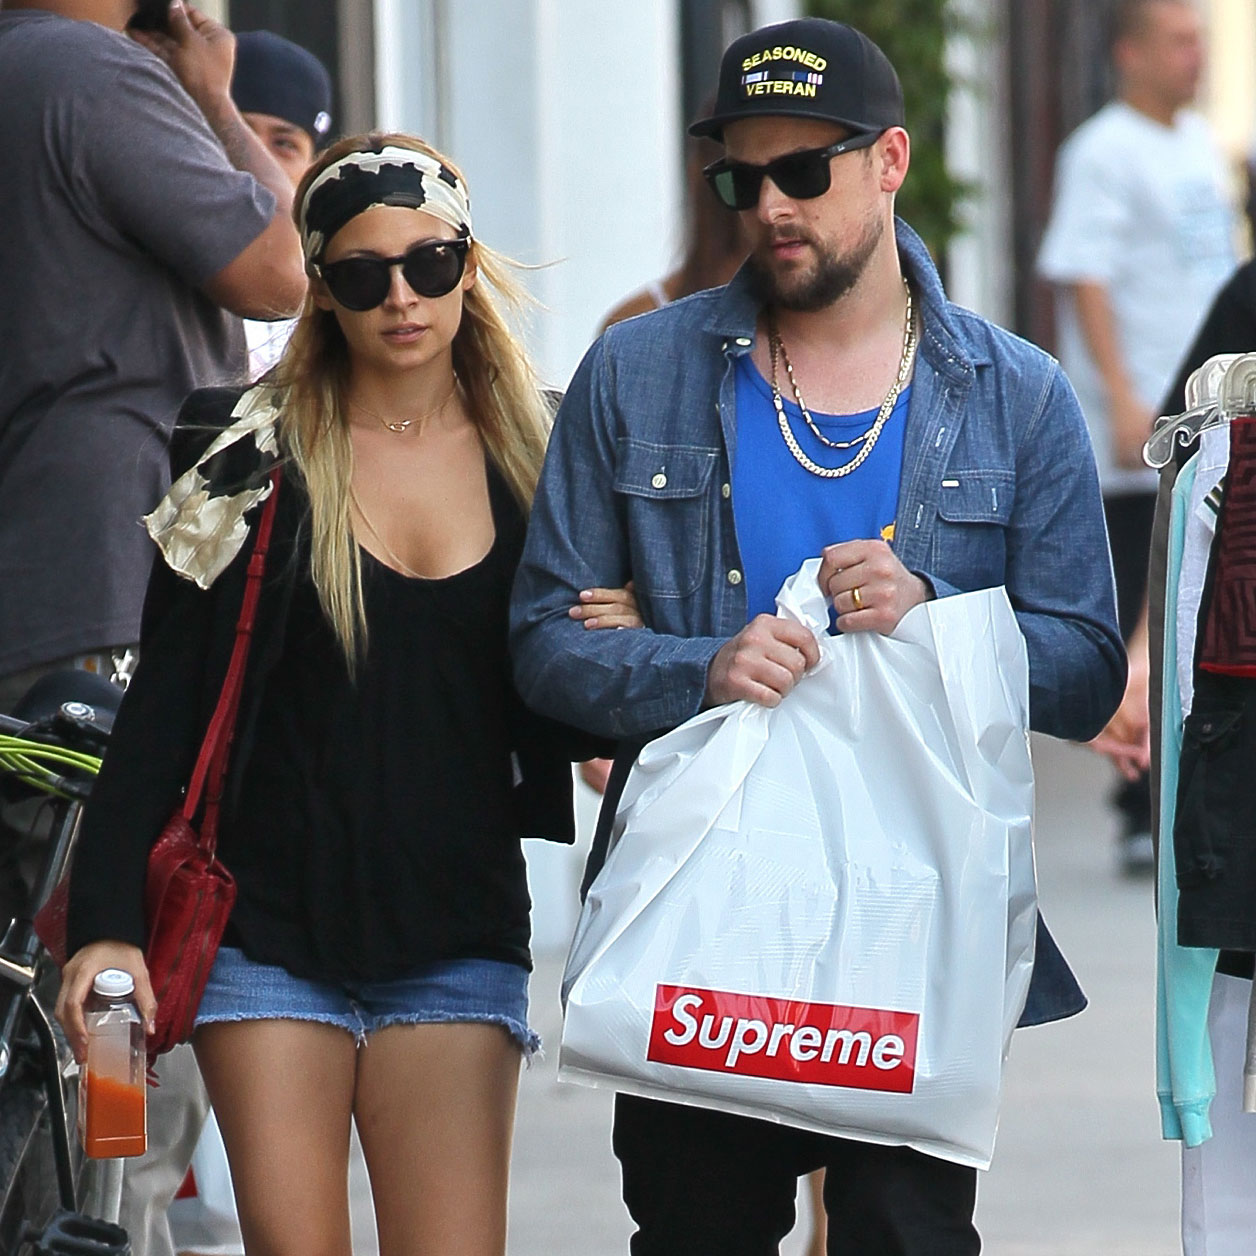 Nicole Richie and Joel Madden shopping in LA.